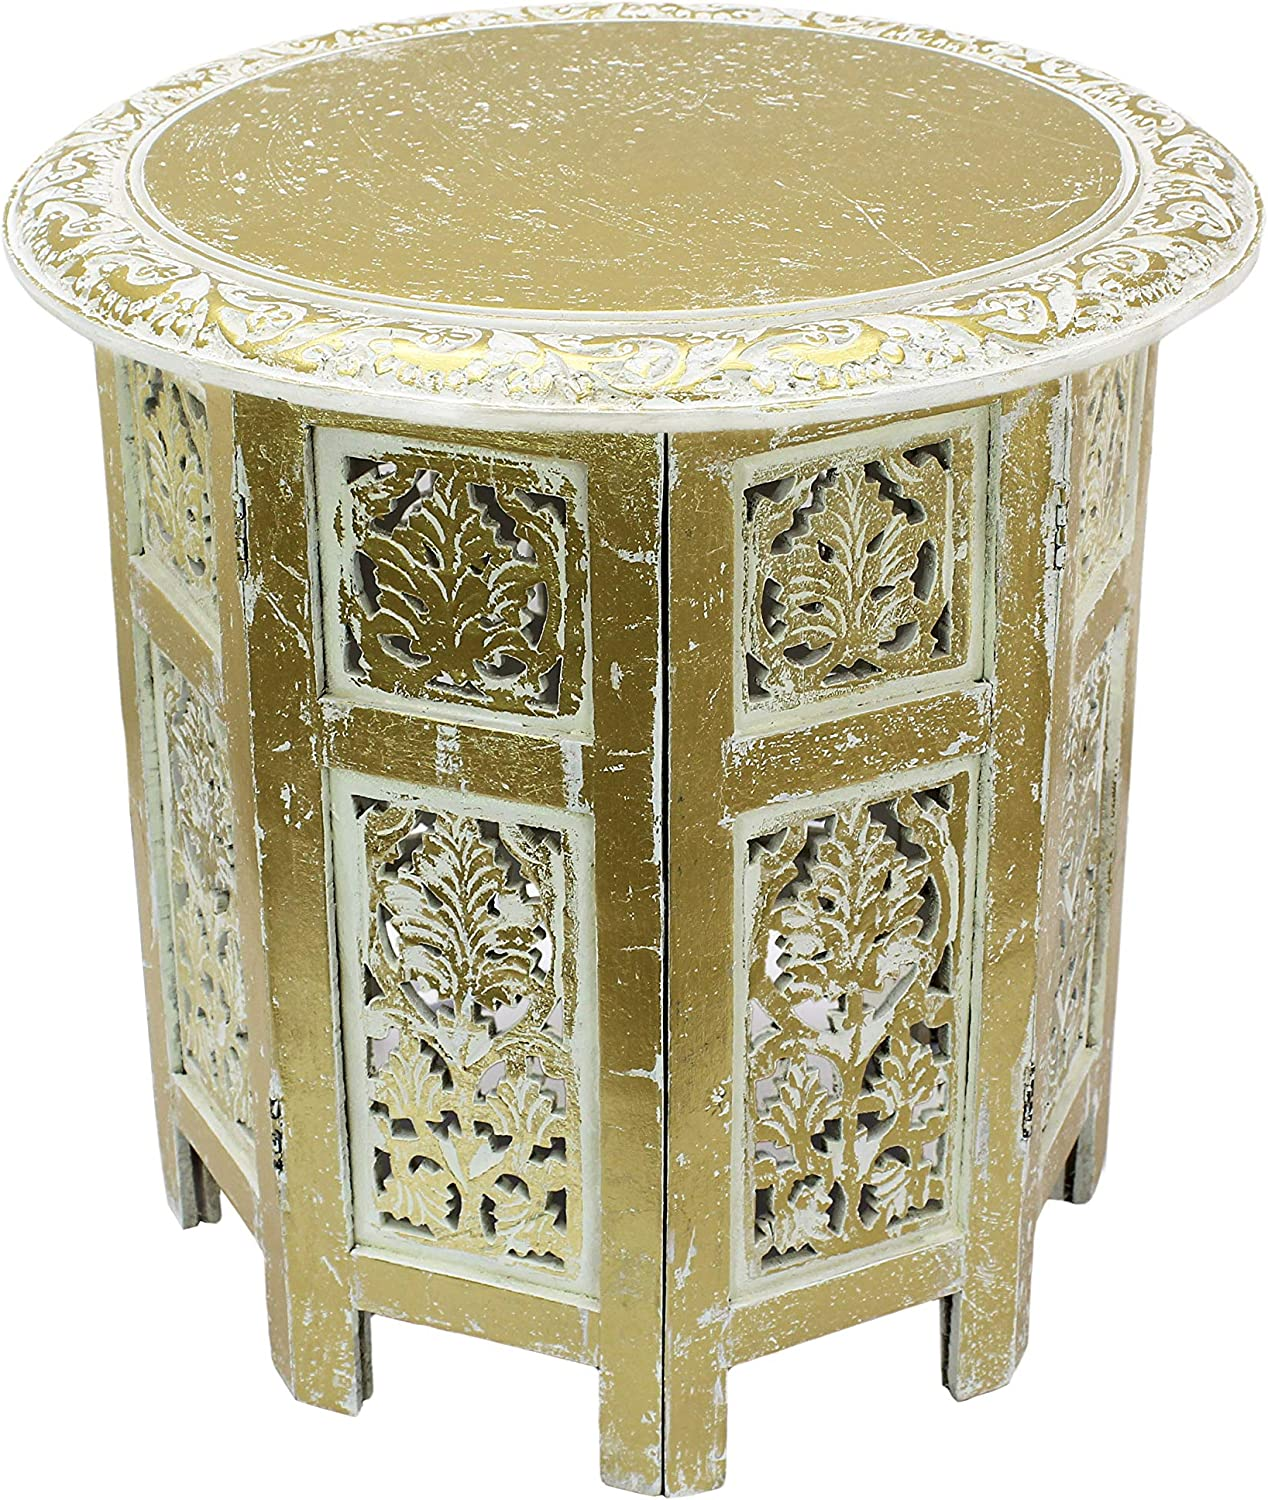 Cotton Craft Jaipur Solid Wood Handcrafted Carved Folding Accent Coffee Table - Antique Gold and White - 18 Inch Round Top x 18 Inch High -Intricate Detail with Hand Carving